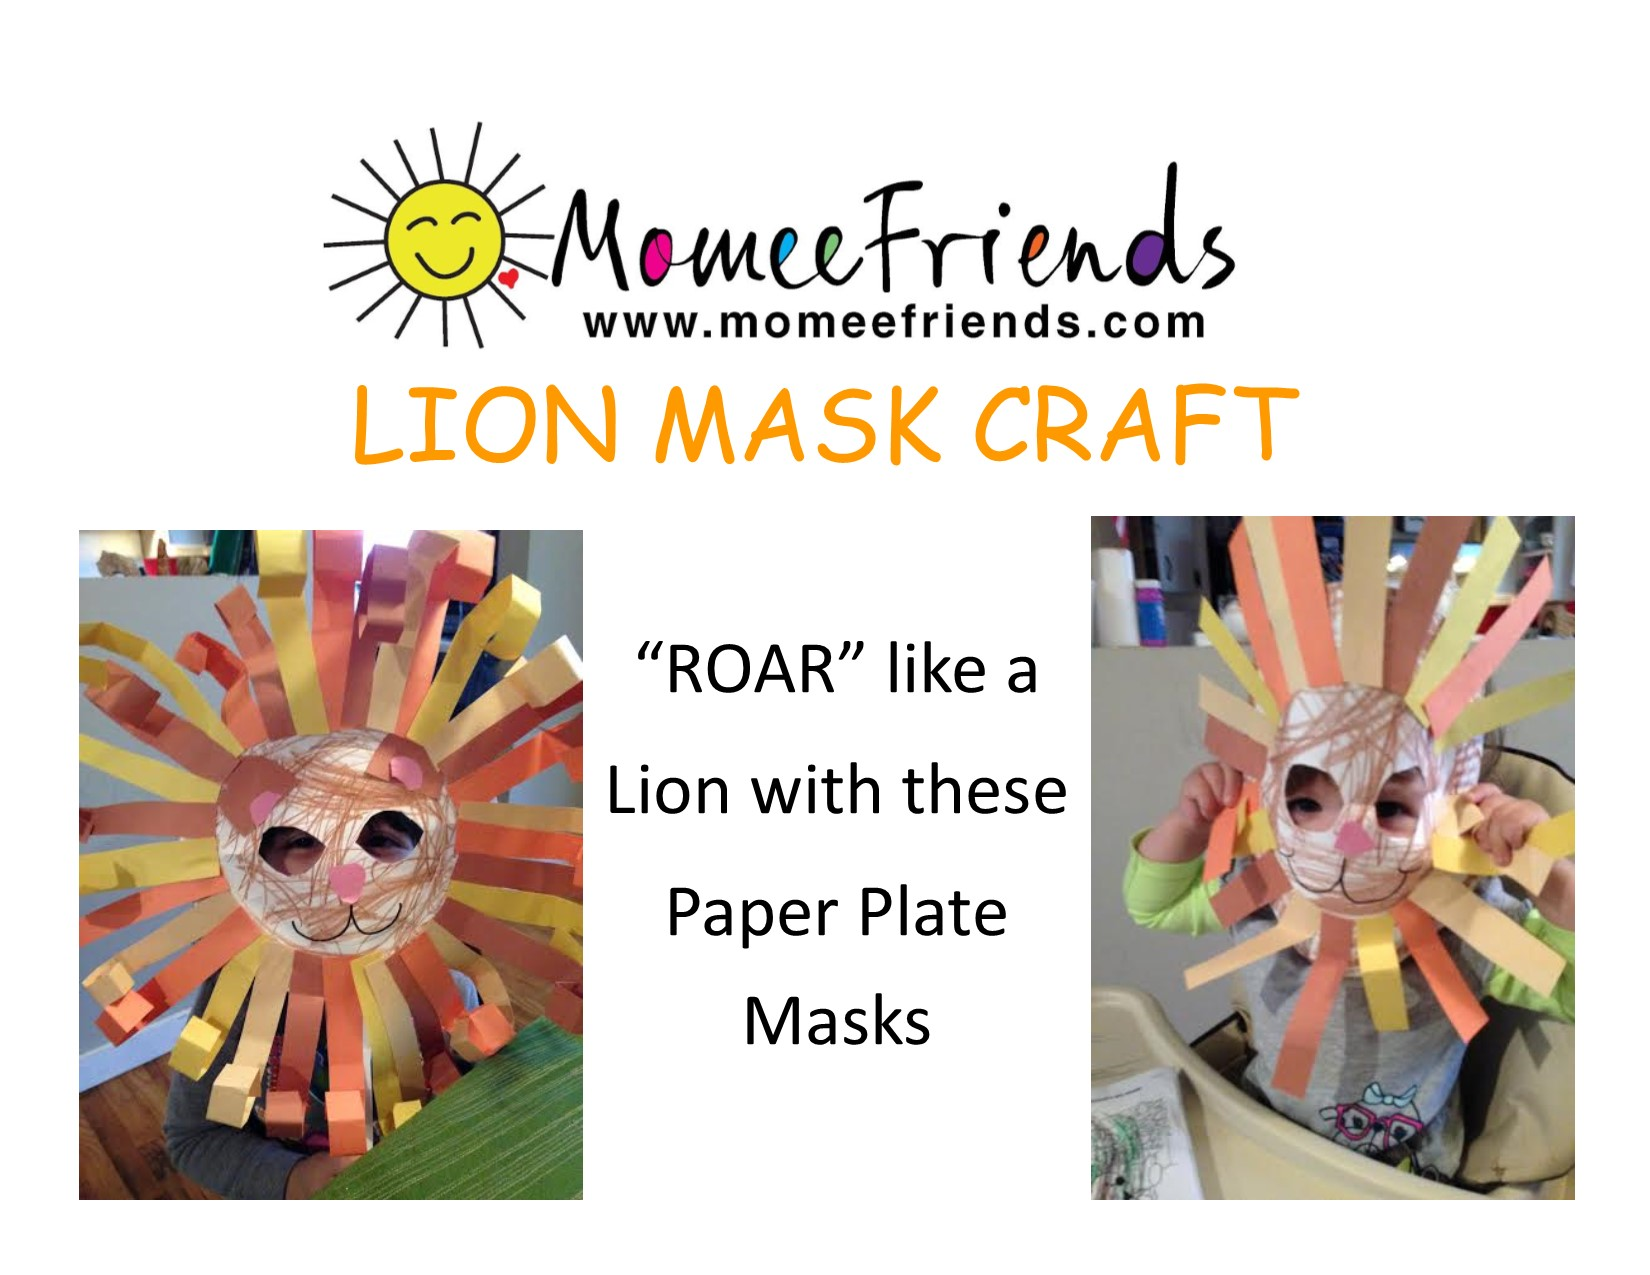 Lion mask made out of paper plate